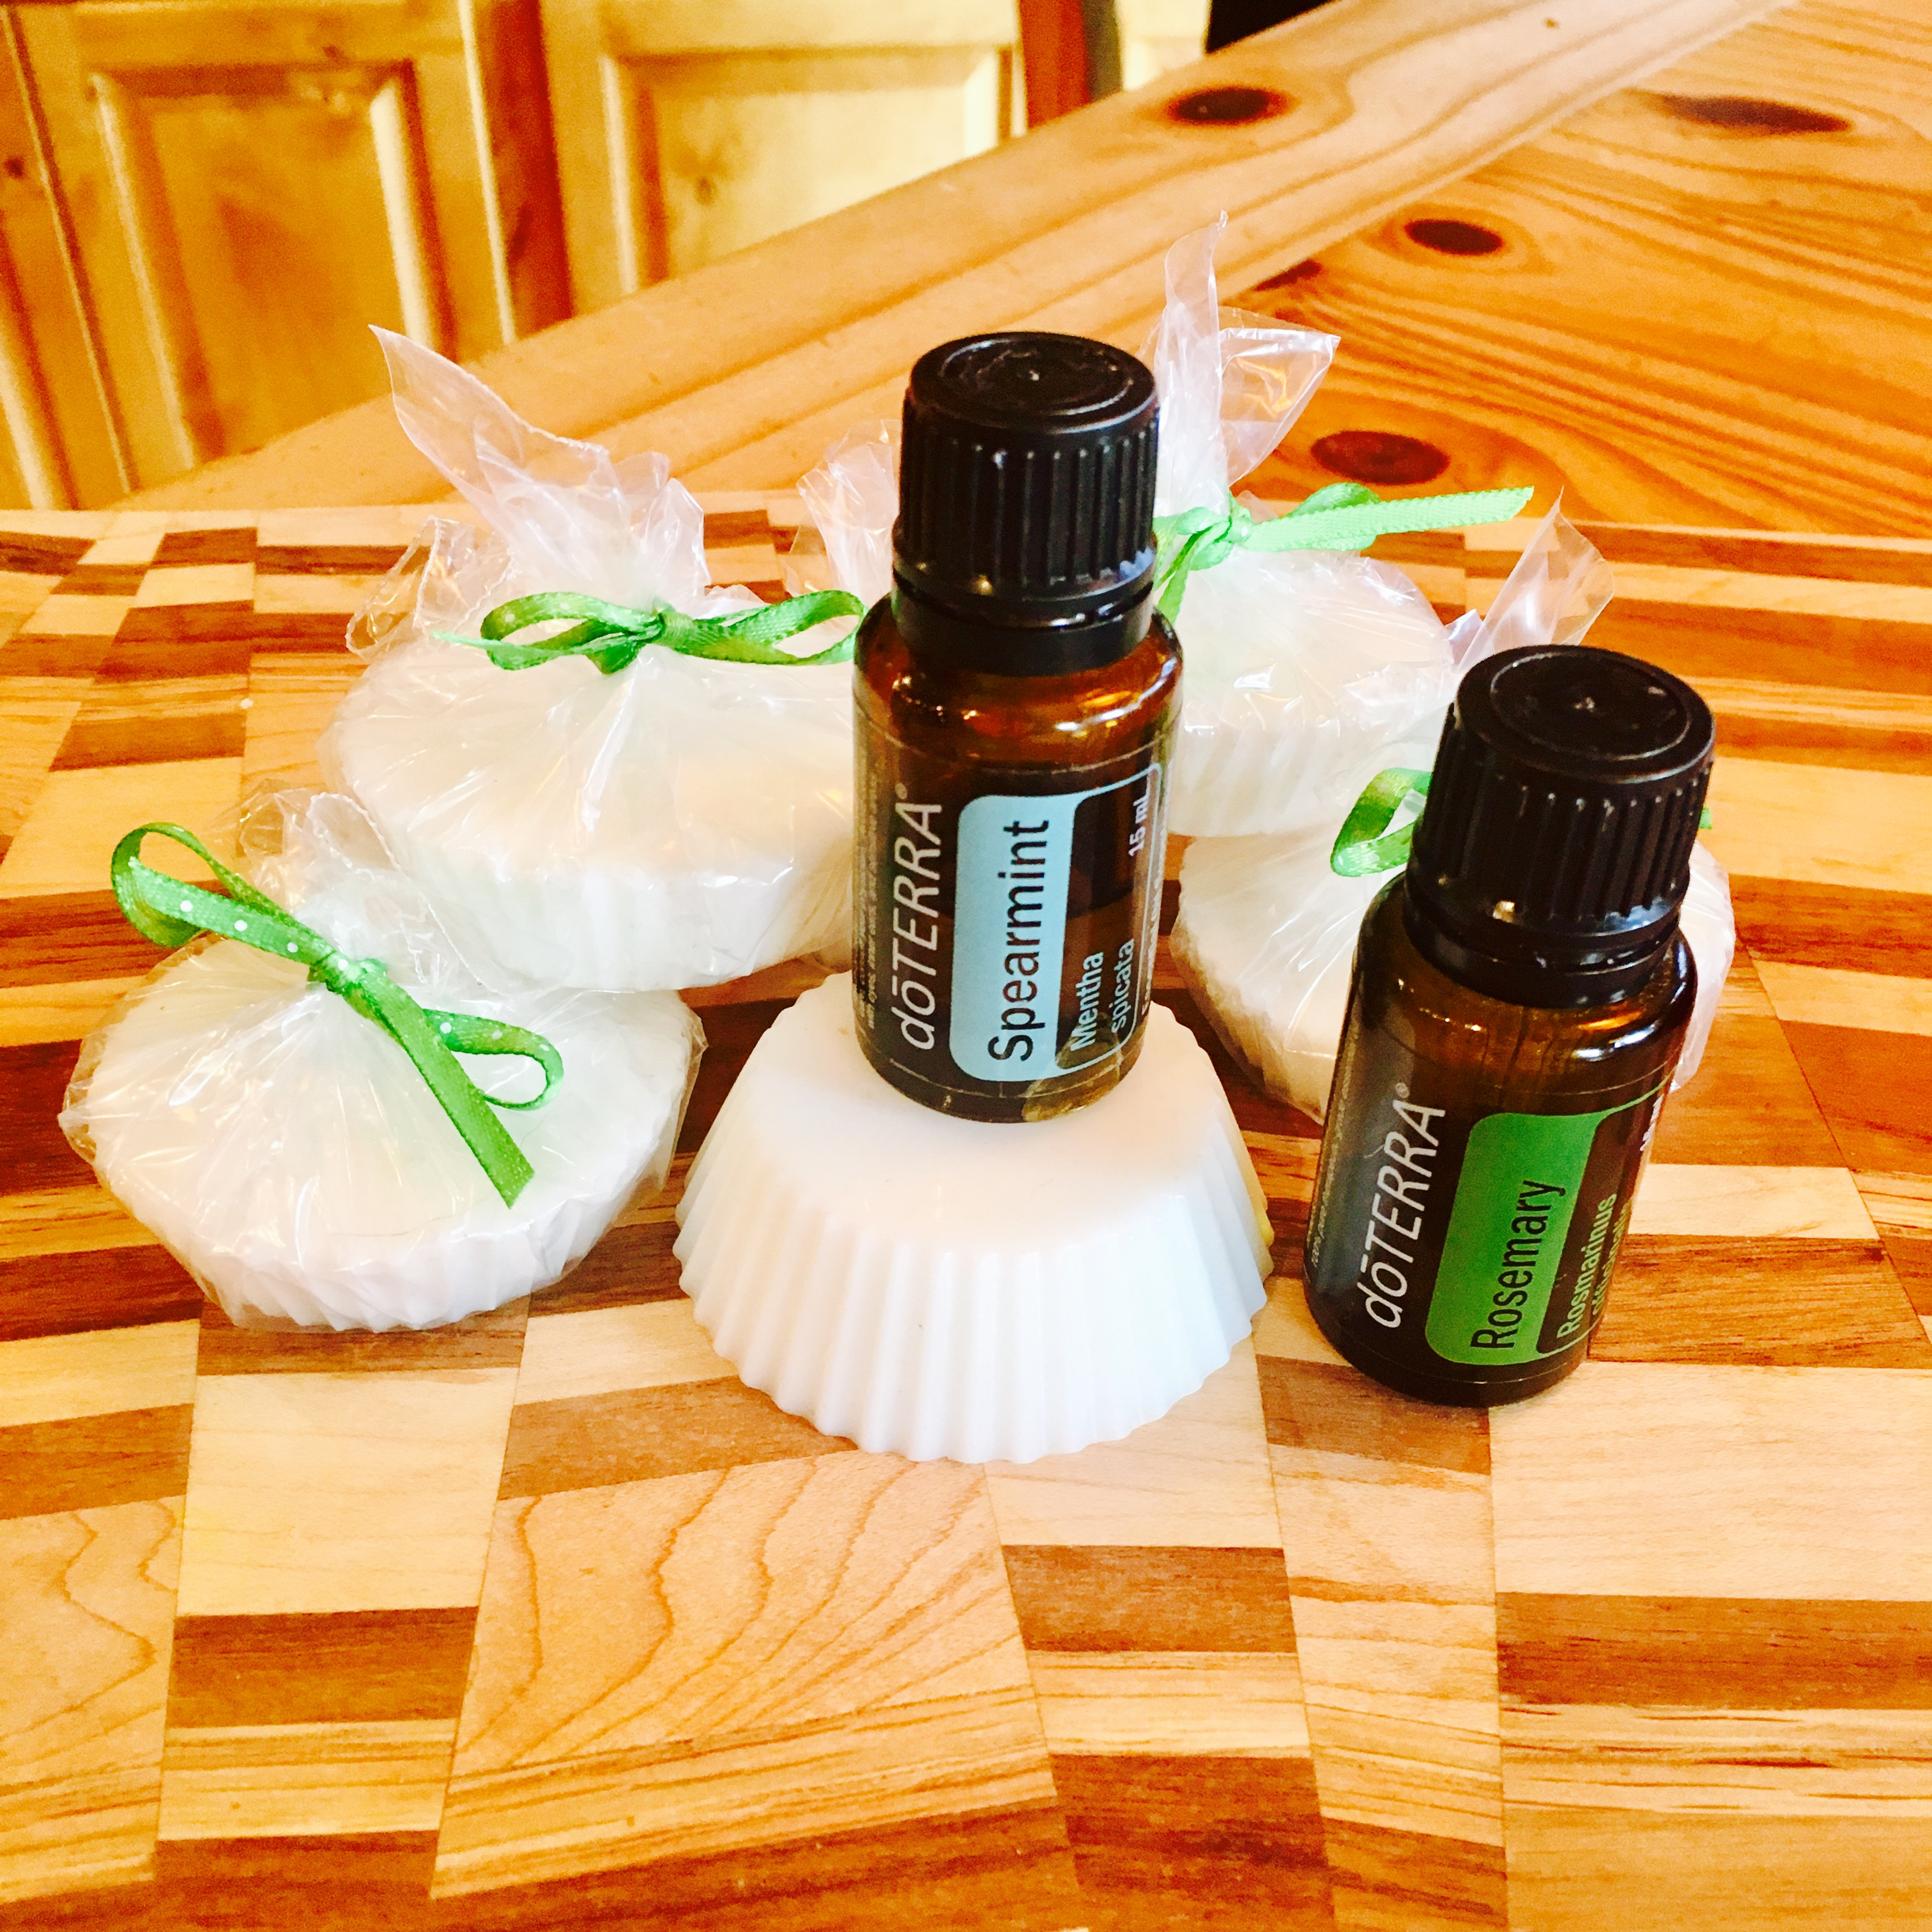 Diy Soap Essential Oils 5 Minute Diy Spearmint Rosemary Soap With Doterra Essential Oils